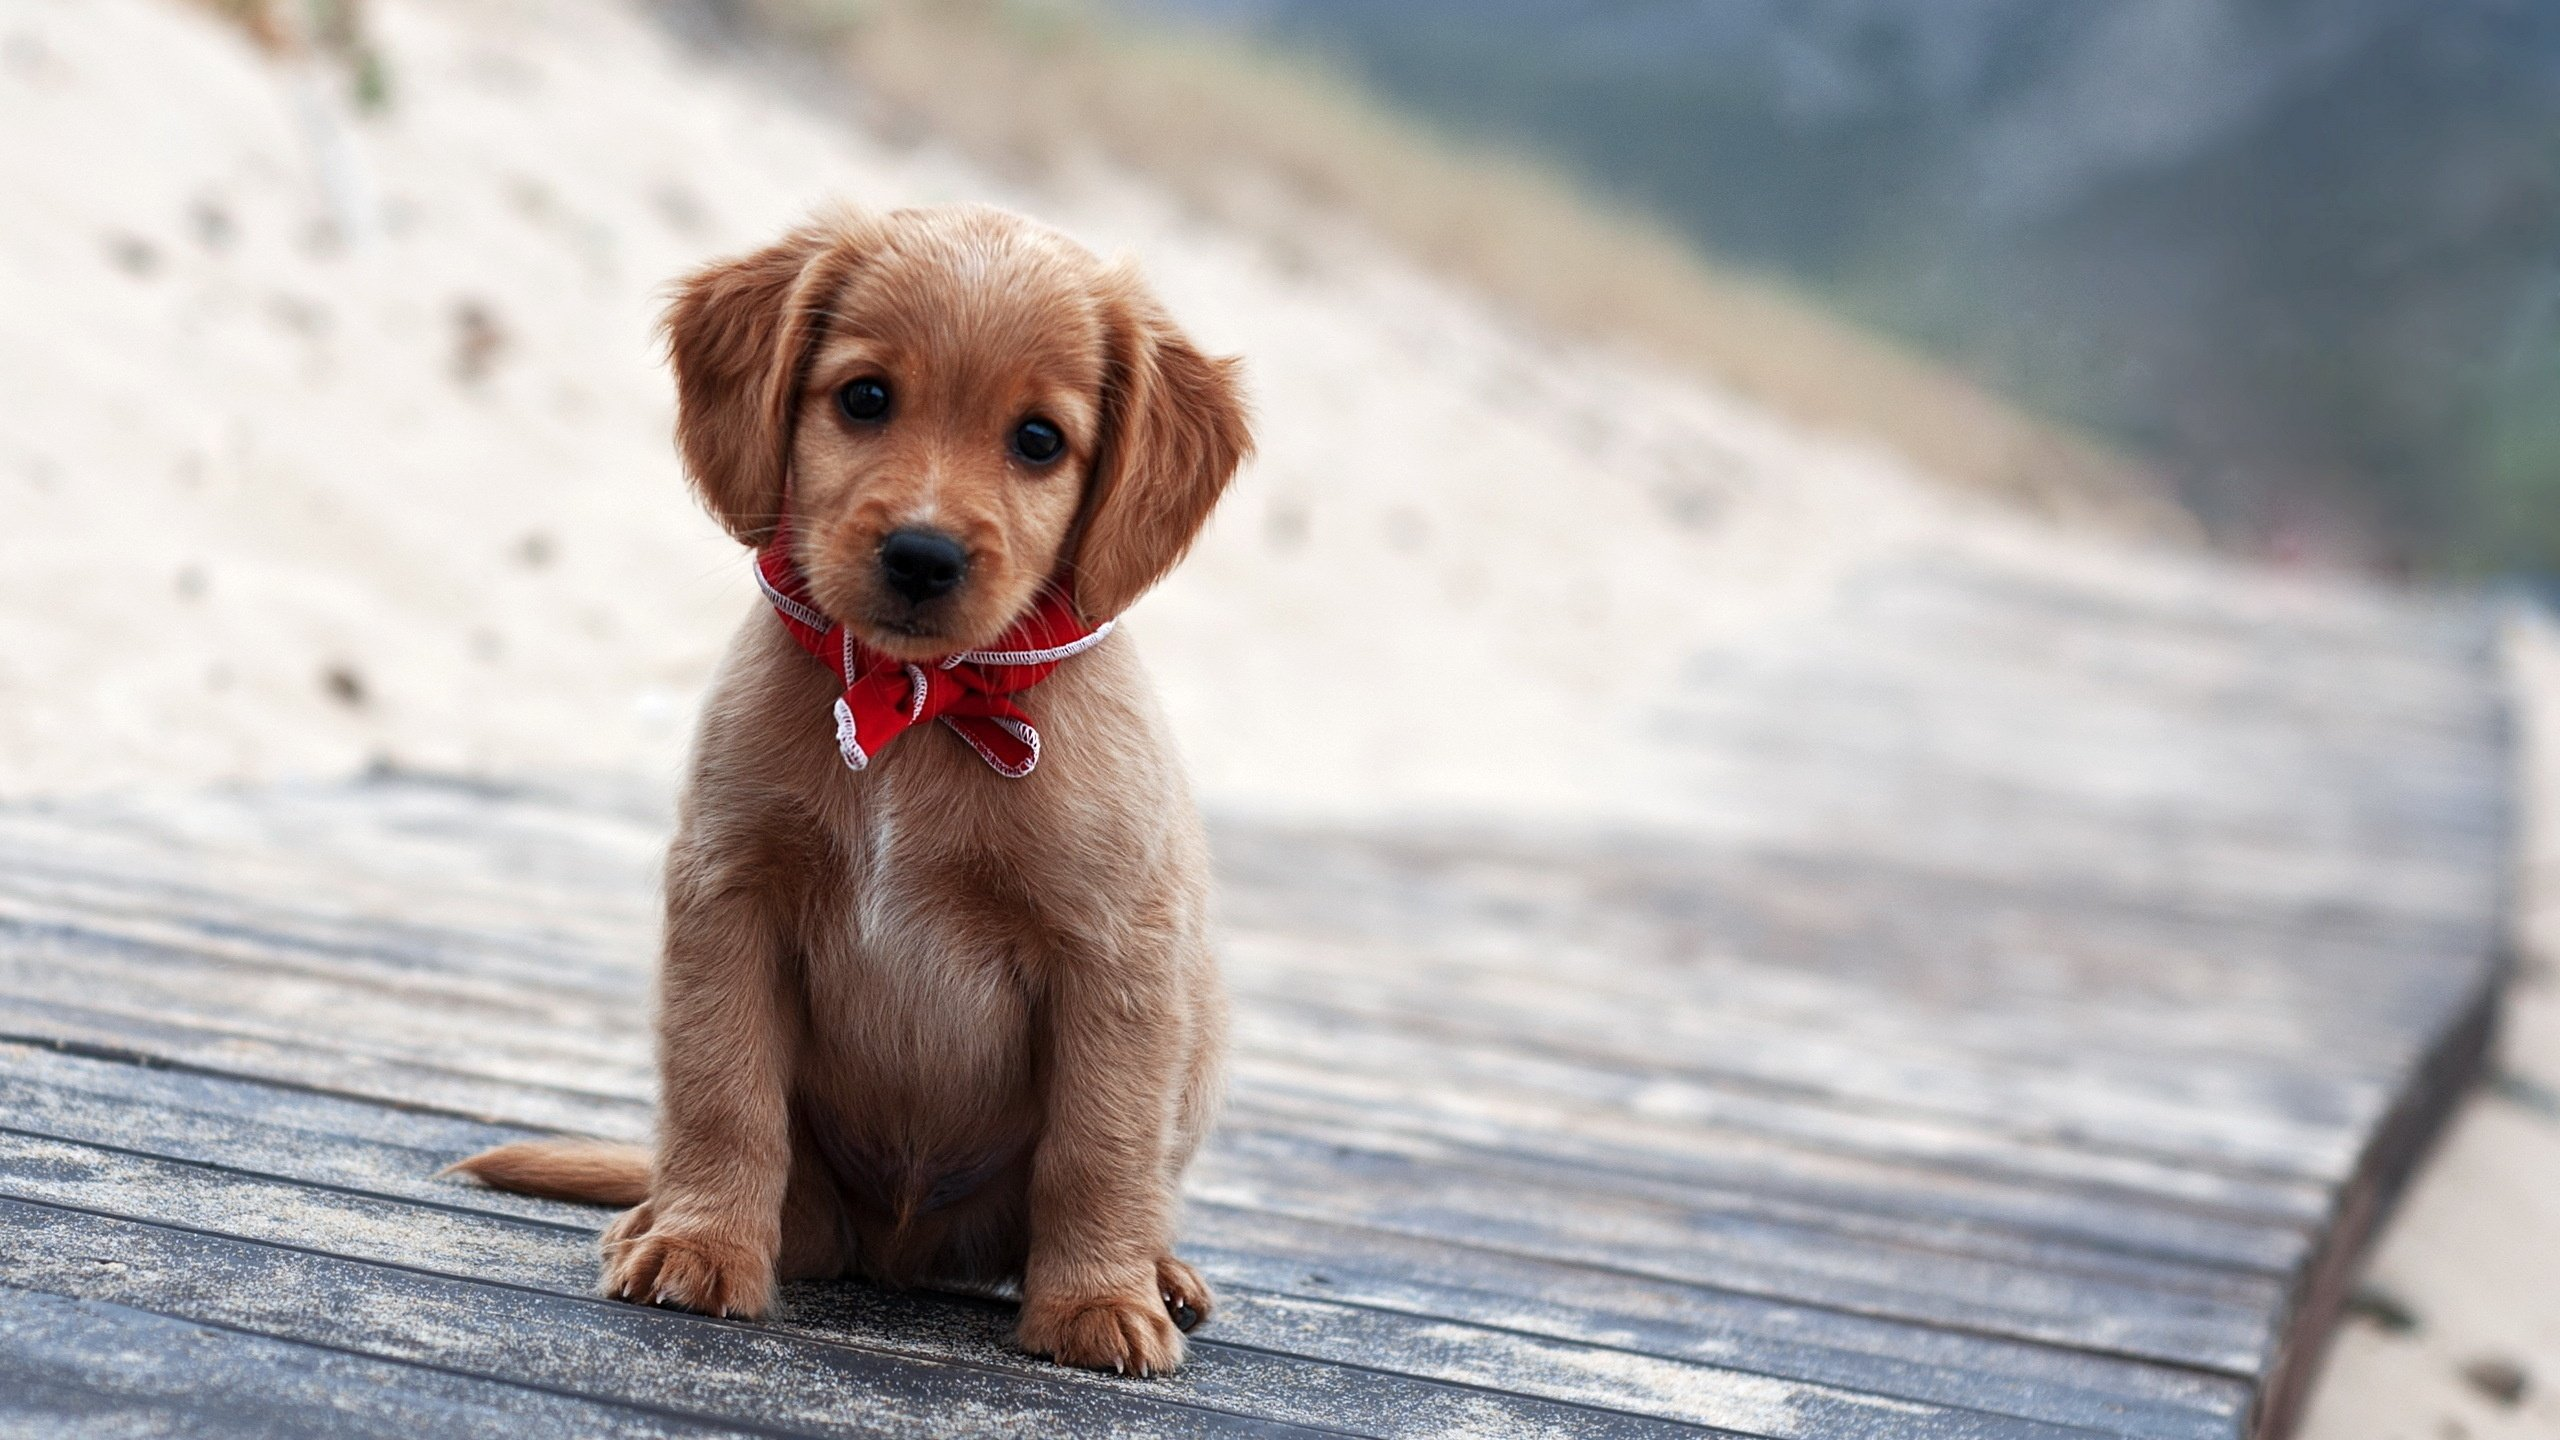 Cute Puppy Collection For Screensaver On Wallpaper Free High